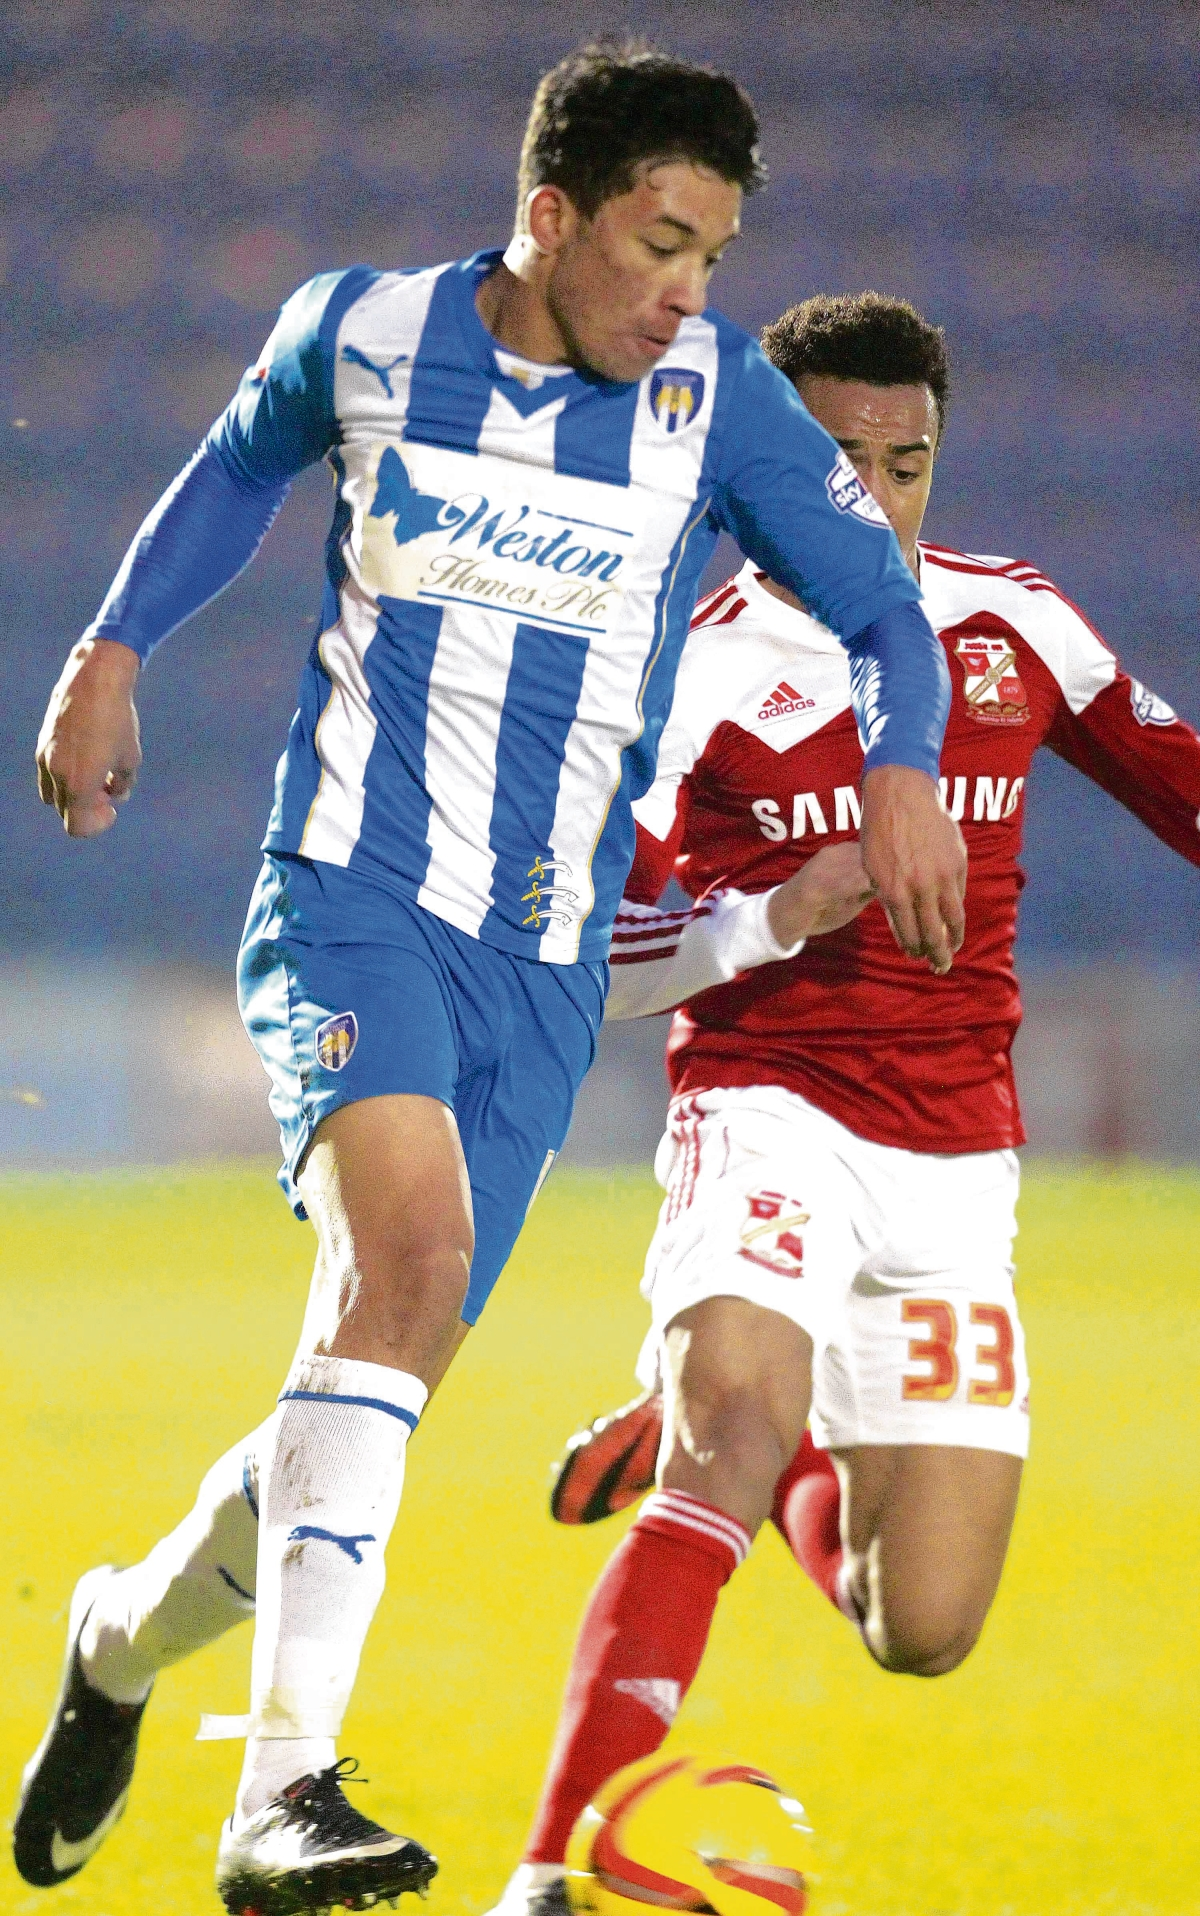 Call-up - Colchester United striker Macauley Bonne has been named in the Zimbabwe squad for their African Cup of Nations qualifier against Guinea next month.